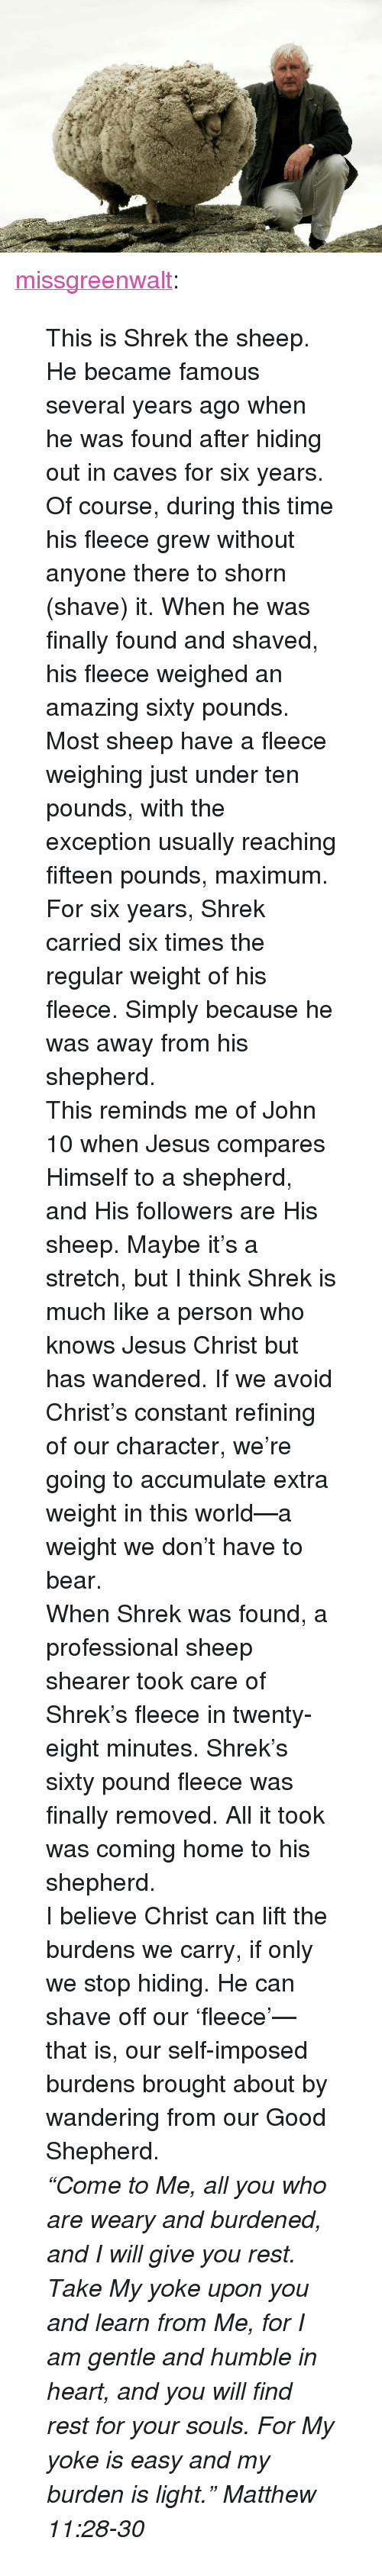 """Jesus, Shrek, and Tumblr: <p><a class=""""tumblr_blog"""" href=""""http://missgreenwalt.tumblr.com/post/33818608623/this-is-shrek-the-sheep-he-became-famous-several"""">missgreenwalt</a>:</p> <blockquote> <p>This is Shrek the sheep. He became famous several years ago when he was found after hiding out in caves for six years. Of course, during this time his fleece grew without anyone there to shorn (shave) it. When he was finally found and shaved, his fleece weighed an amazing sixty pounds. Most sheep have a fleece weighing just under ten pounds, with the exception usually reaching fifteen pounds, maximum. For six years, Shrek carried six times the regular weight of his fleece. Simply because he was away from his shepherd.</p> <p>This reminds me of John 10 when Jesus compares Himself to a shepherd, and His followers are His sheep. Maybe it's a stretch, but I think Shrek is much like a person who knows Jesus Christ but has wandered. If we avoid Christ's constant refining of our character, we're going to accumulate extra weight in this world—a weight we don't have to bear.</p> <p>When Shrek was found, a professional sheep shearer took care of Shrek's fleece in twenty-eight minutes. Shrek's sixty pound fleece was finally removed. All it took was coming home to his shepherd.</p> <p>I believe Christ can lift the burdens we carry, if only we stop hiding. He can shave off our 'fleece'—that is, our self-imposed burdens brought about by wandering from our Good Shepherd.</p> <p><em>""""Come to Me, all you who are weary and burdened, and I will give you rest. Take My yoke upon you and learn from Me, for I am gentle and humble in heart, and you will find rest for your souls. For My yoke is easy and my burden is light."""" Matthew 11:28-30</em></p> </blockquote>"""